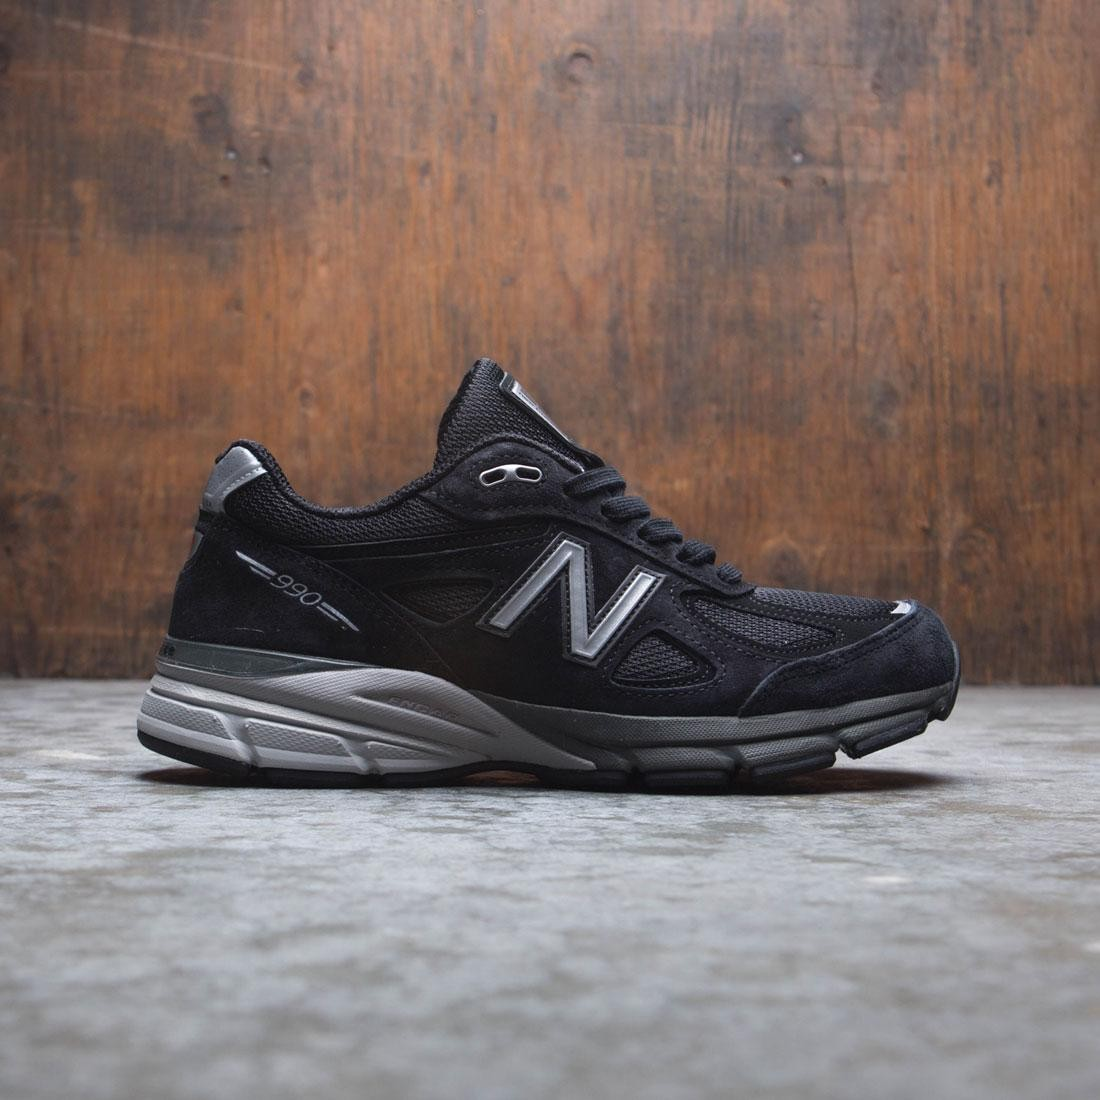 low priced d4dd1 3d86d New Balance Women 990v4 W990BK4 - Made In USA (black / silver)